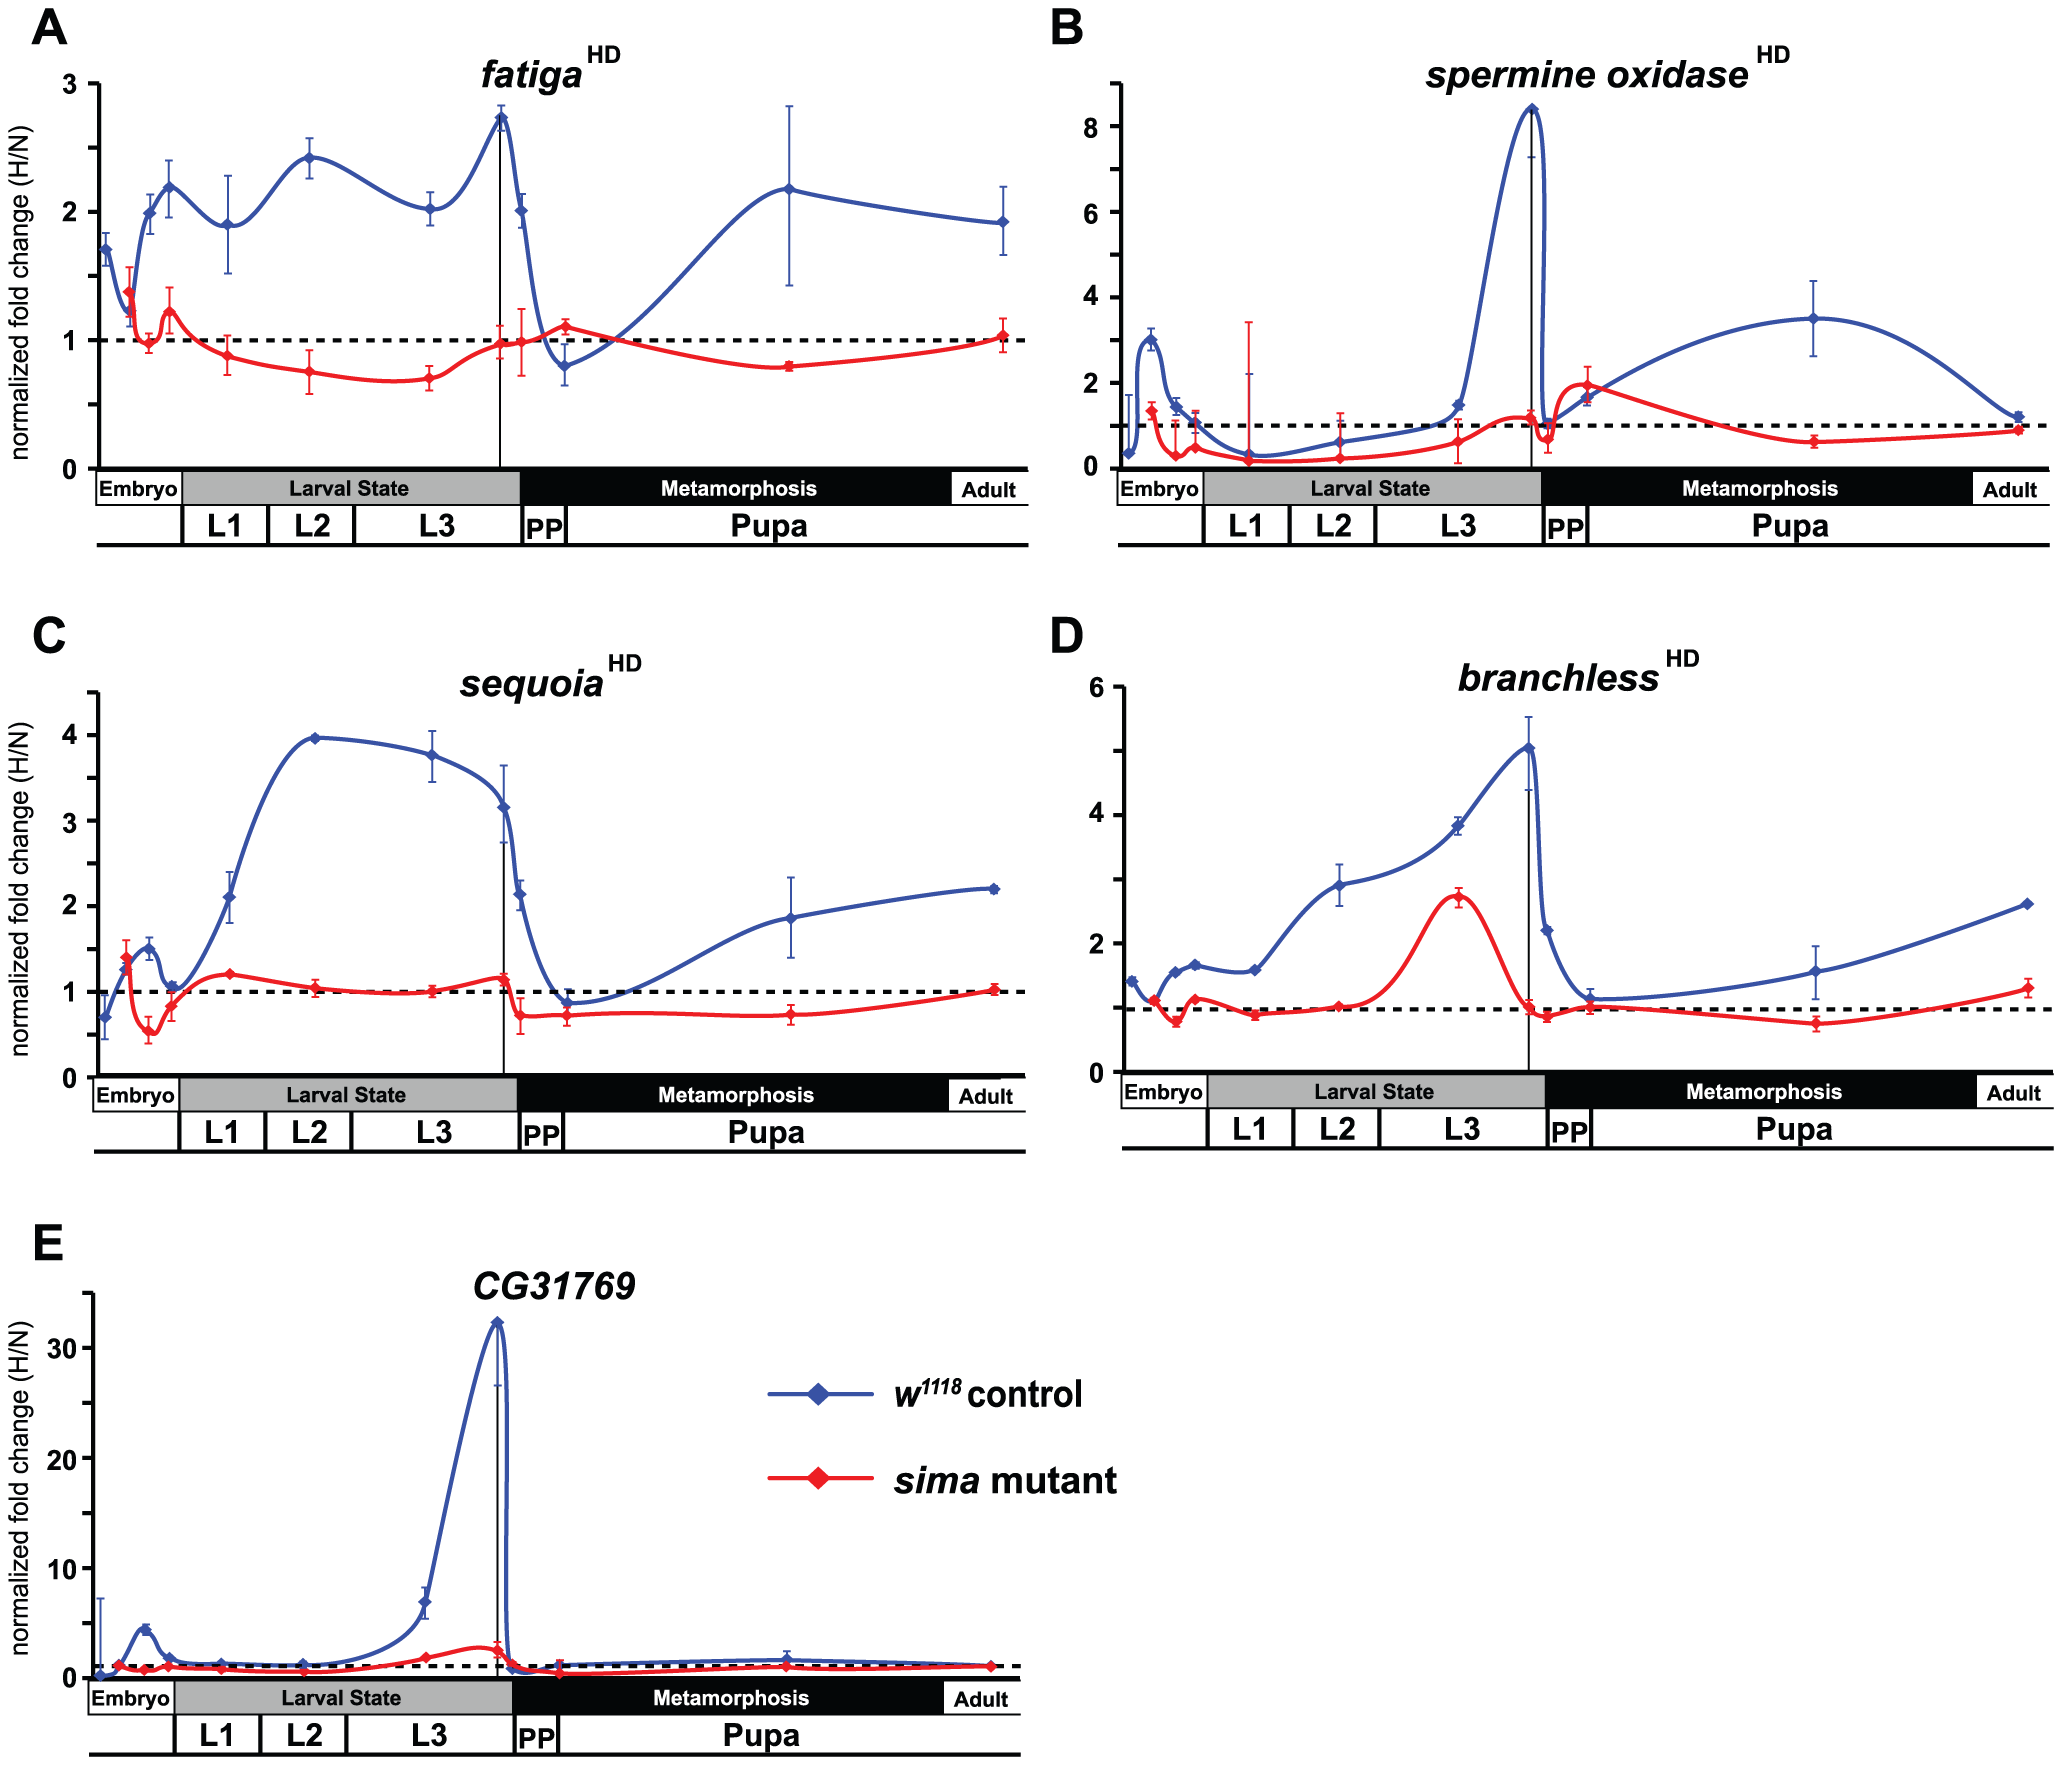 Temporal expression of HIF-dependent hypoxic response genes.